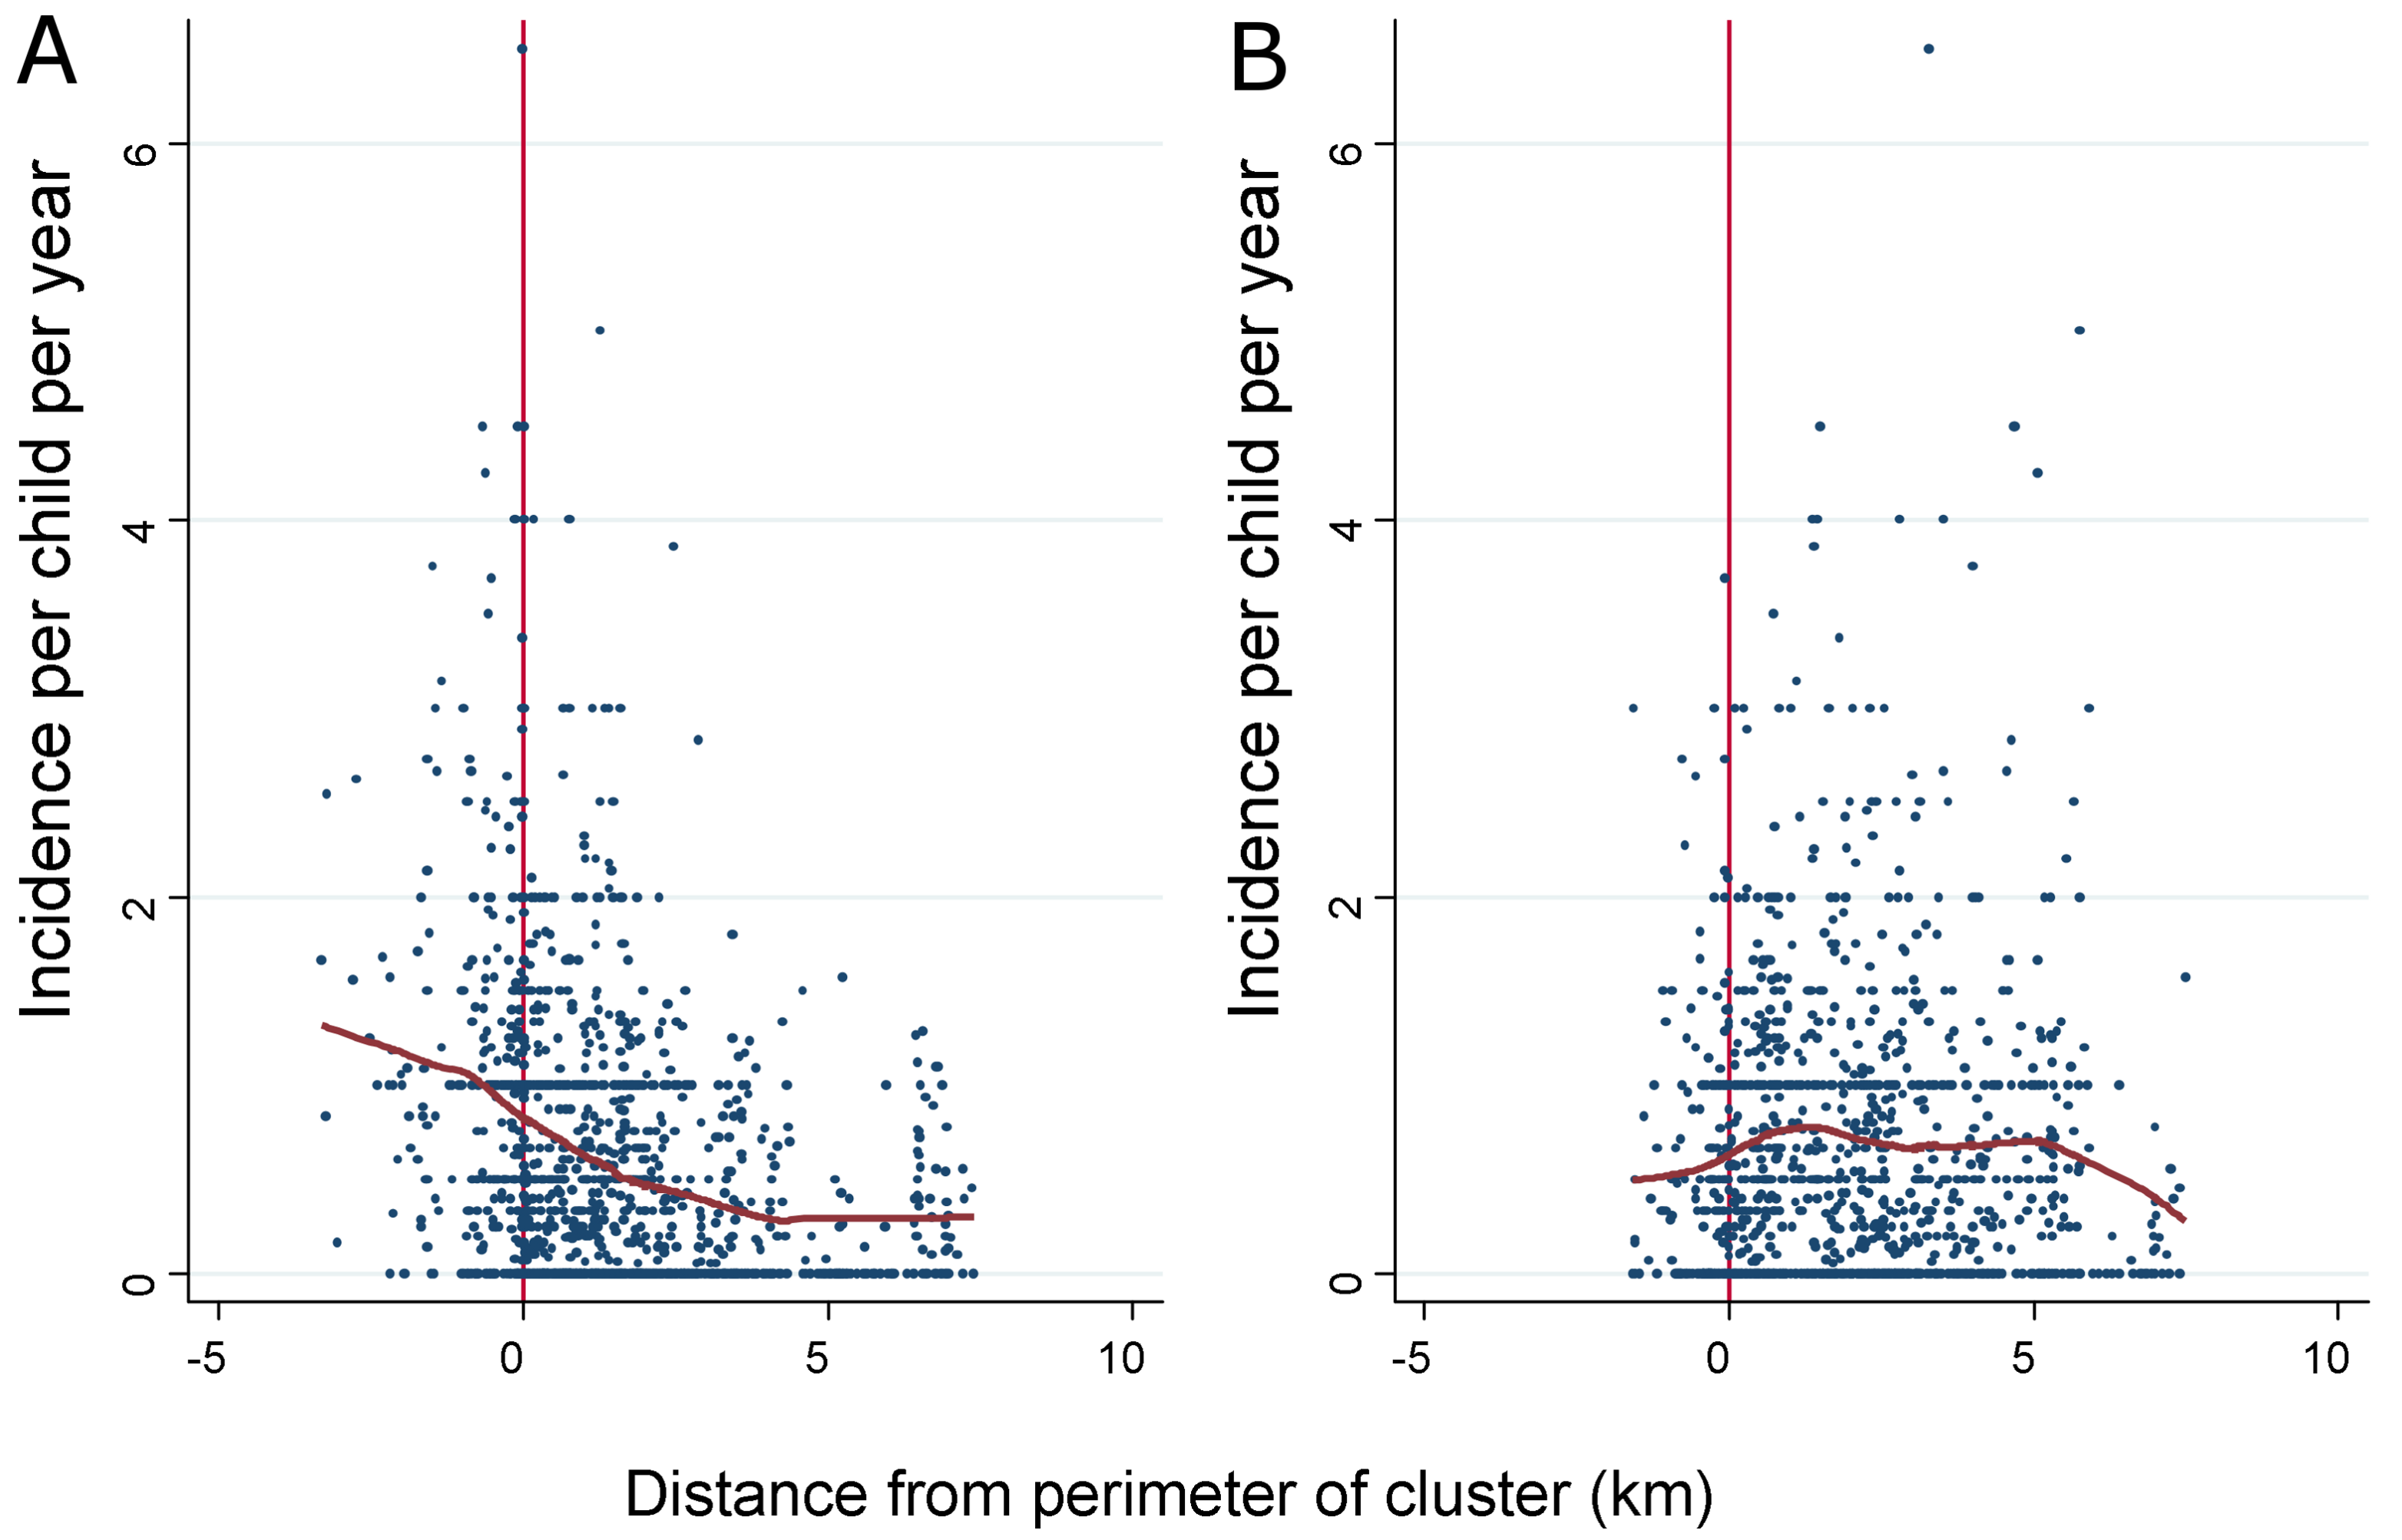 The incidence of febrile malaria for each homestead is plotted against distance from the perimeter of the cluster for (A) clusters of febrile malaria and (B) clusters of asymptomatic parasitaemia.